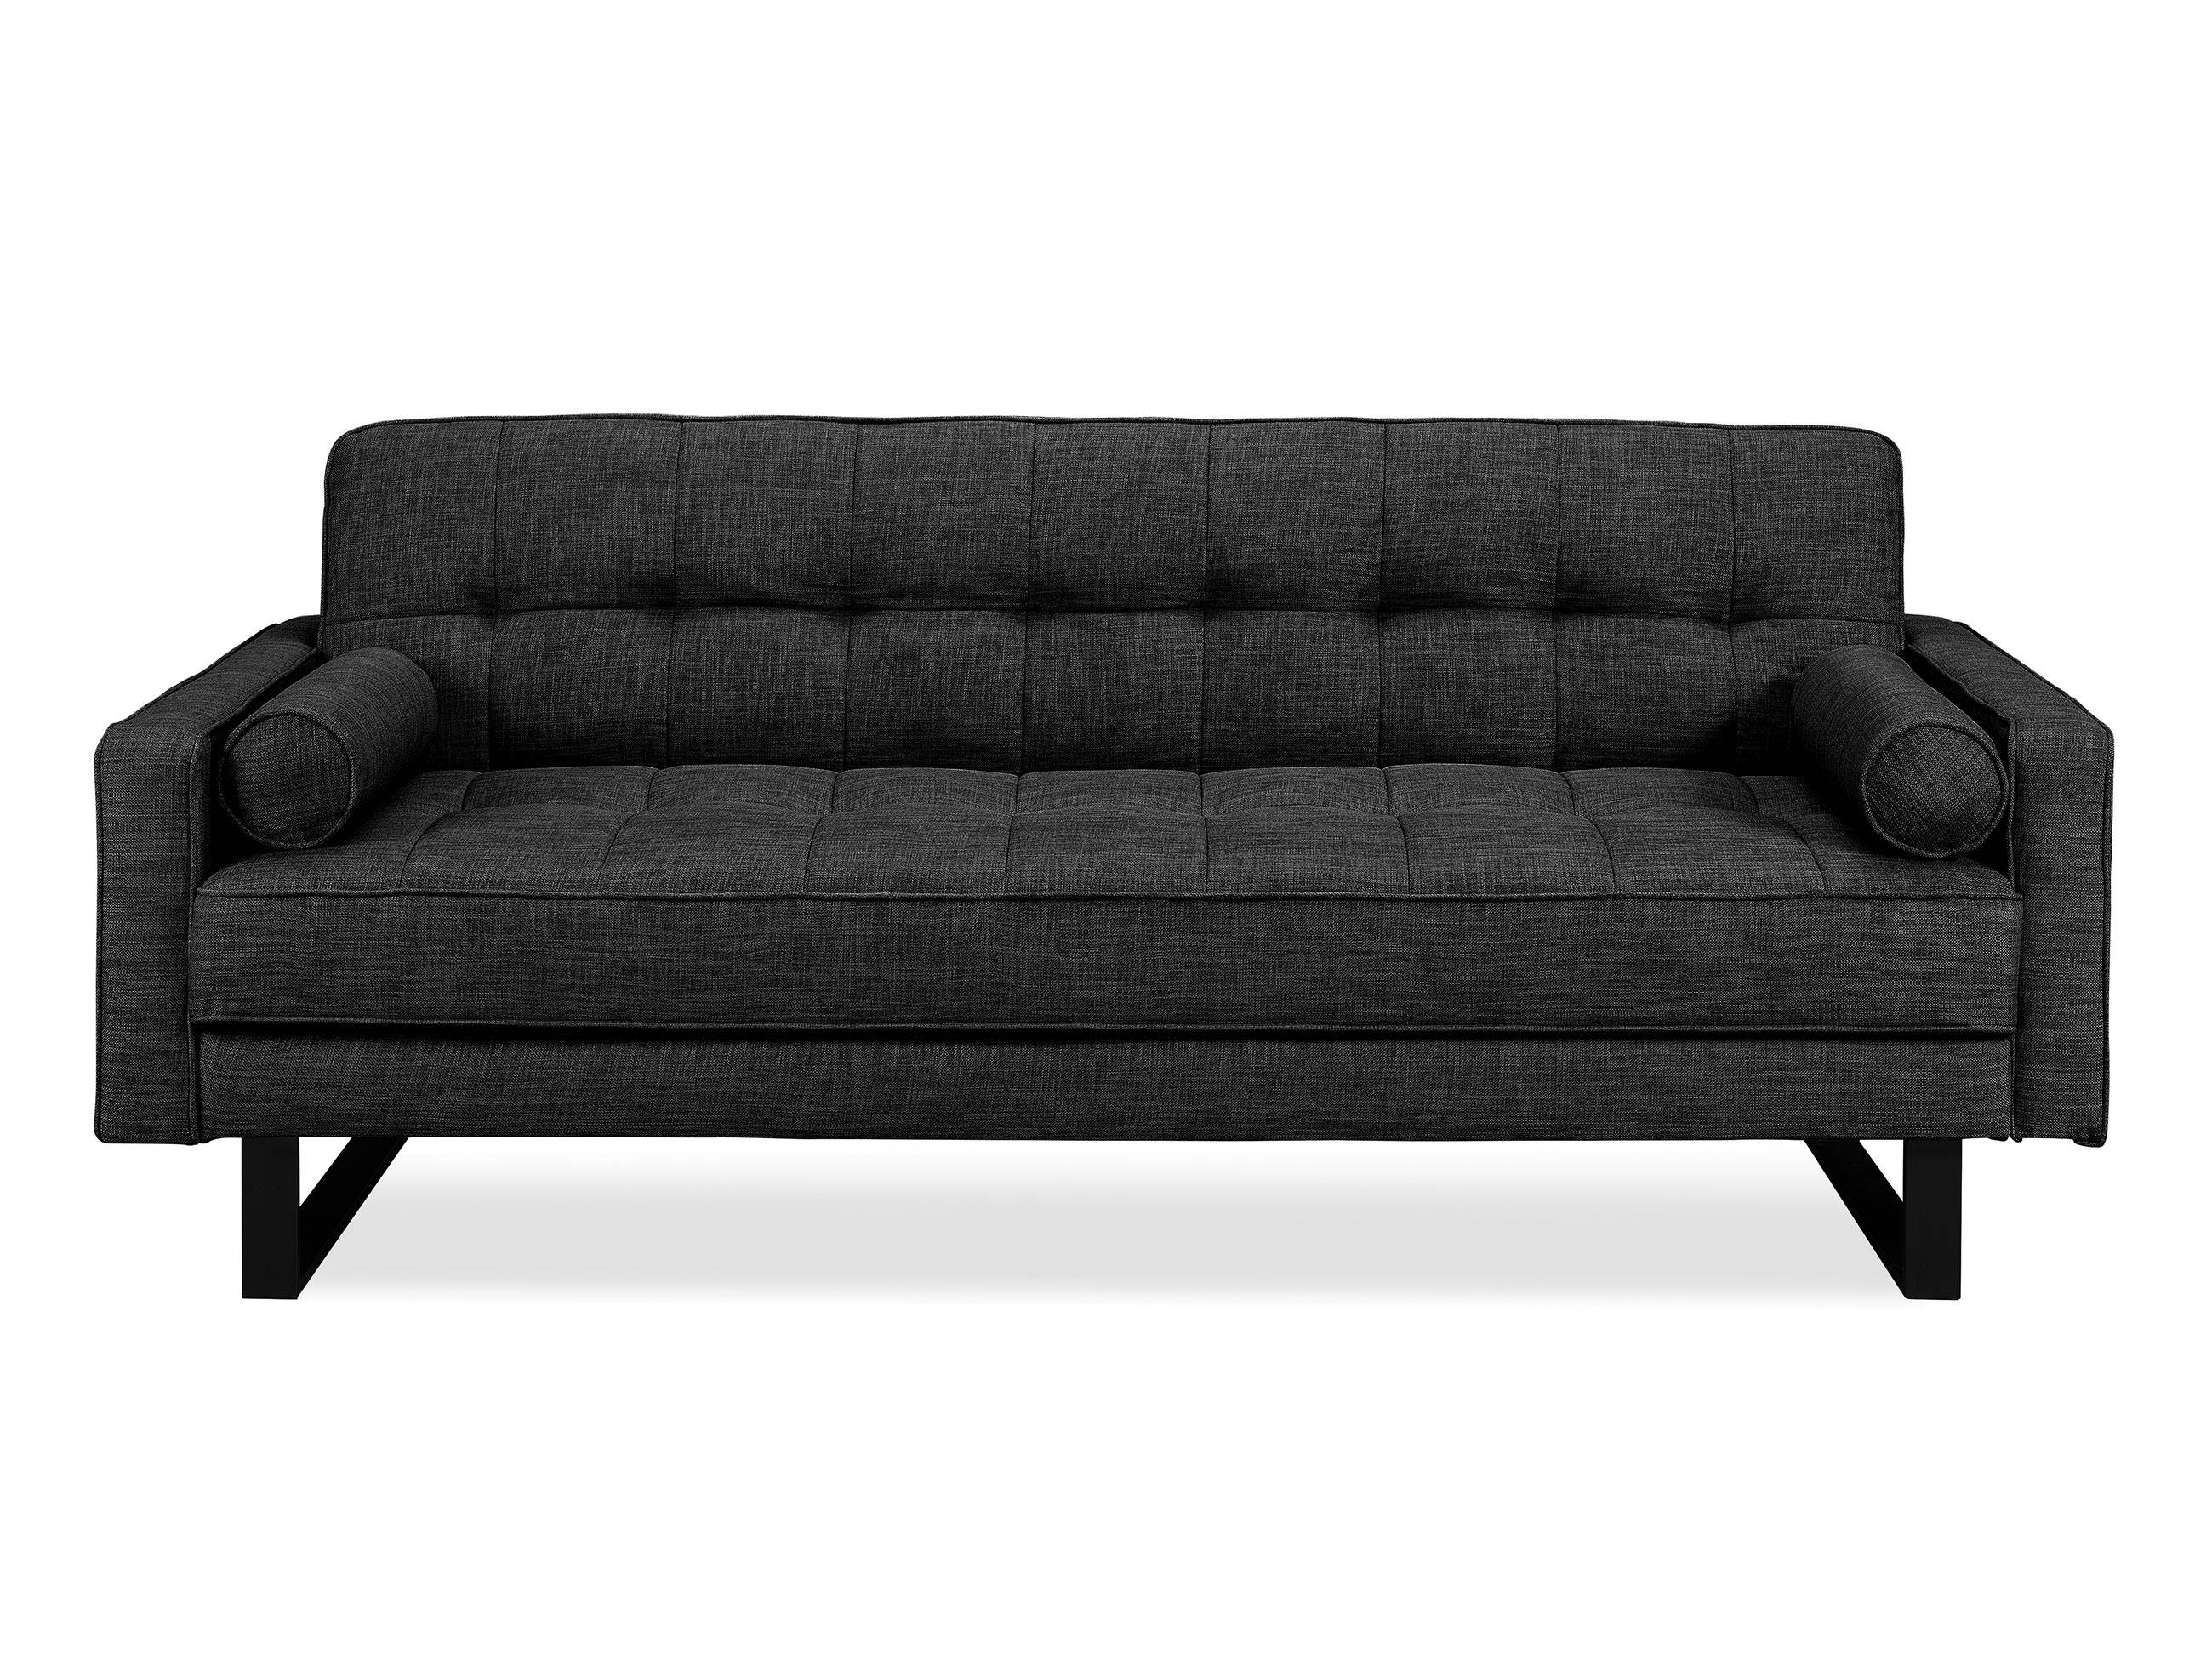 Medina Convertible Sofa Charcoal Greyserta / Lifestyle Within Charcoal Grey Sofas (View 16 of 30)